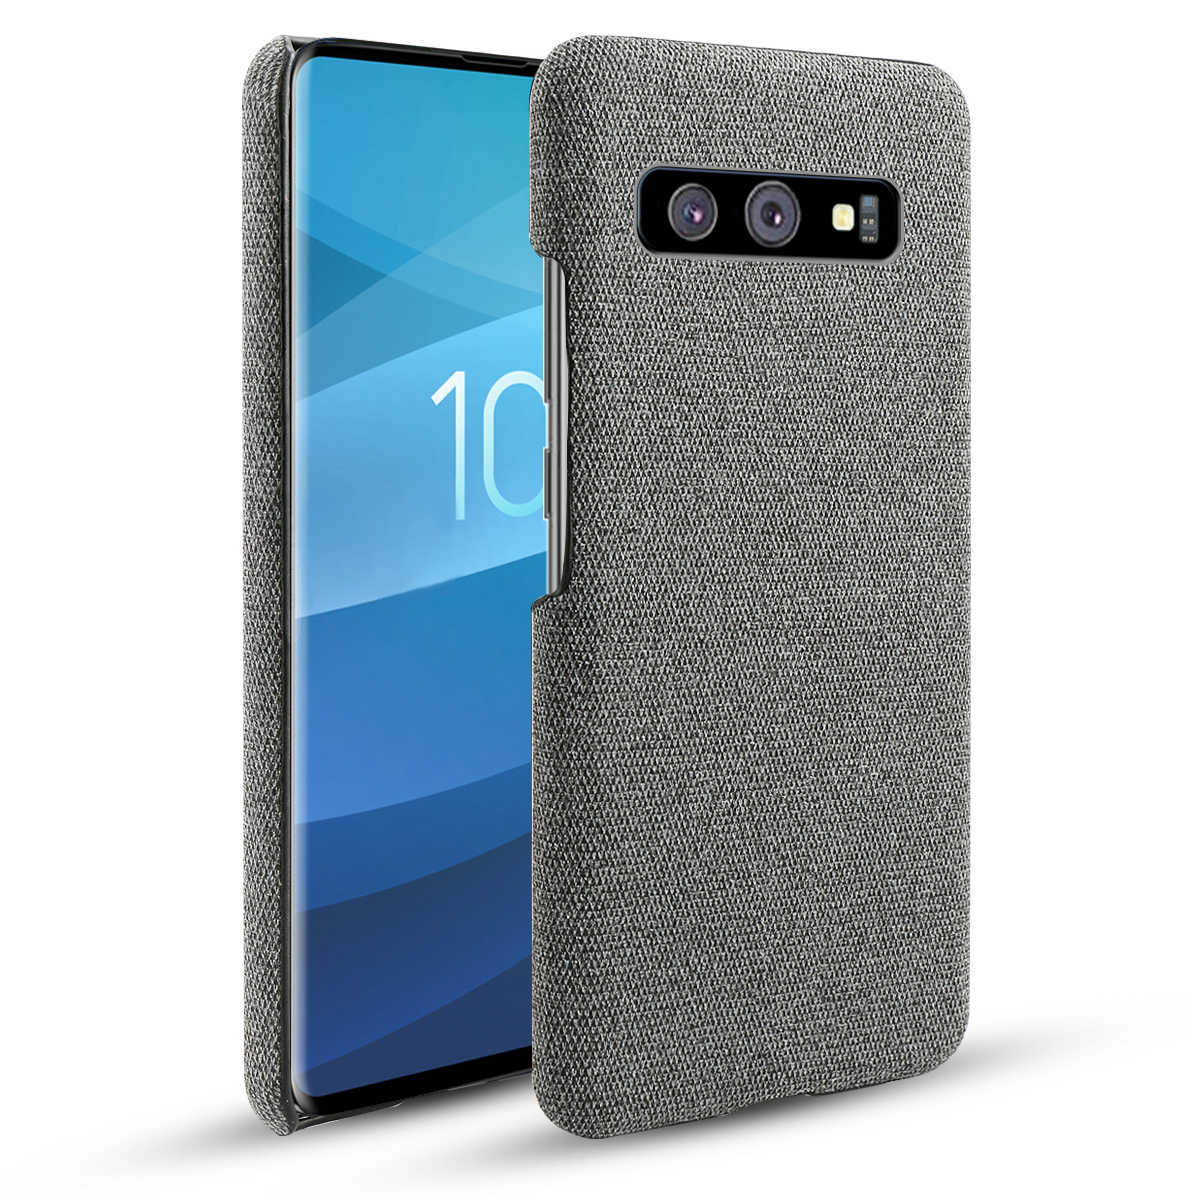 Voor Samsung Galaxy S10 S10 Plus S10E S10 5G Case Slim Anti-kras Geweven Stof Doek Hard PC cover Voor Samsung S10 Note 10 Case